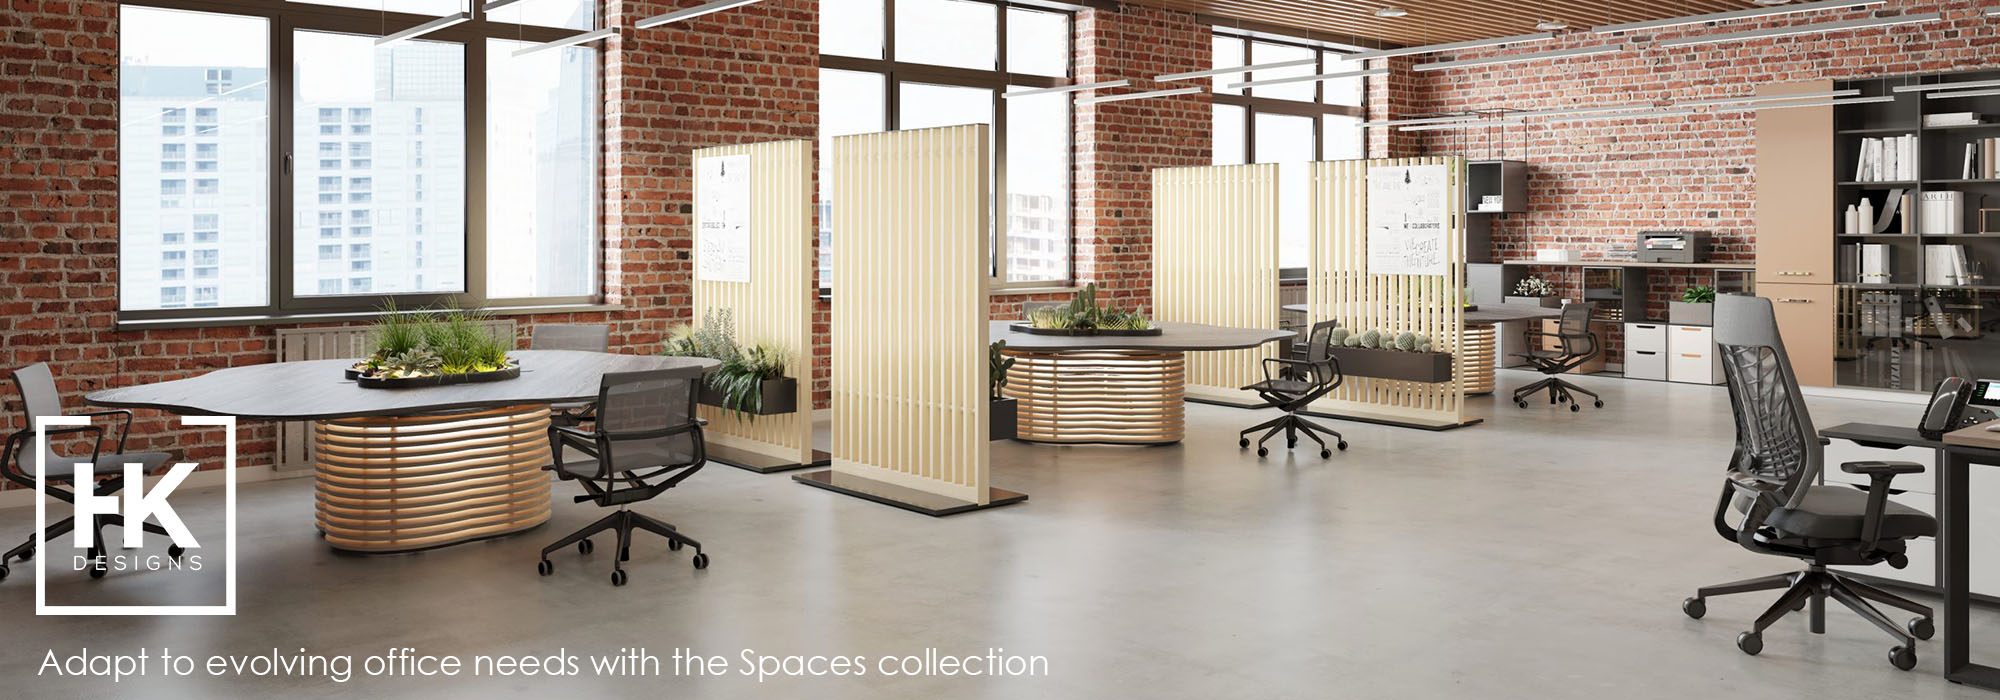 HK Designs Spaces Collection - Space 2 Create - Space 2 Occupy - Space 2 Sit - Space 4 Four